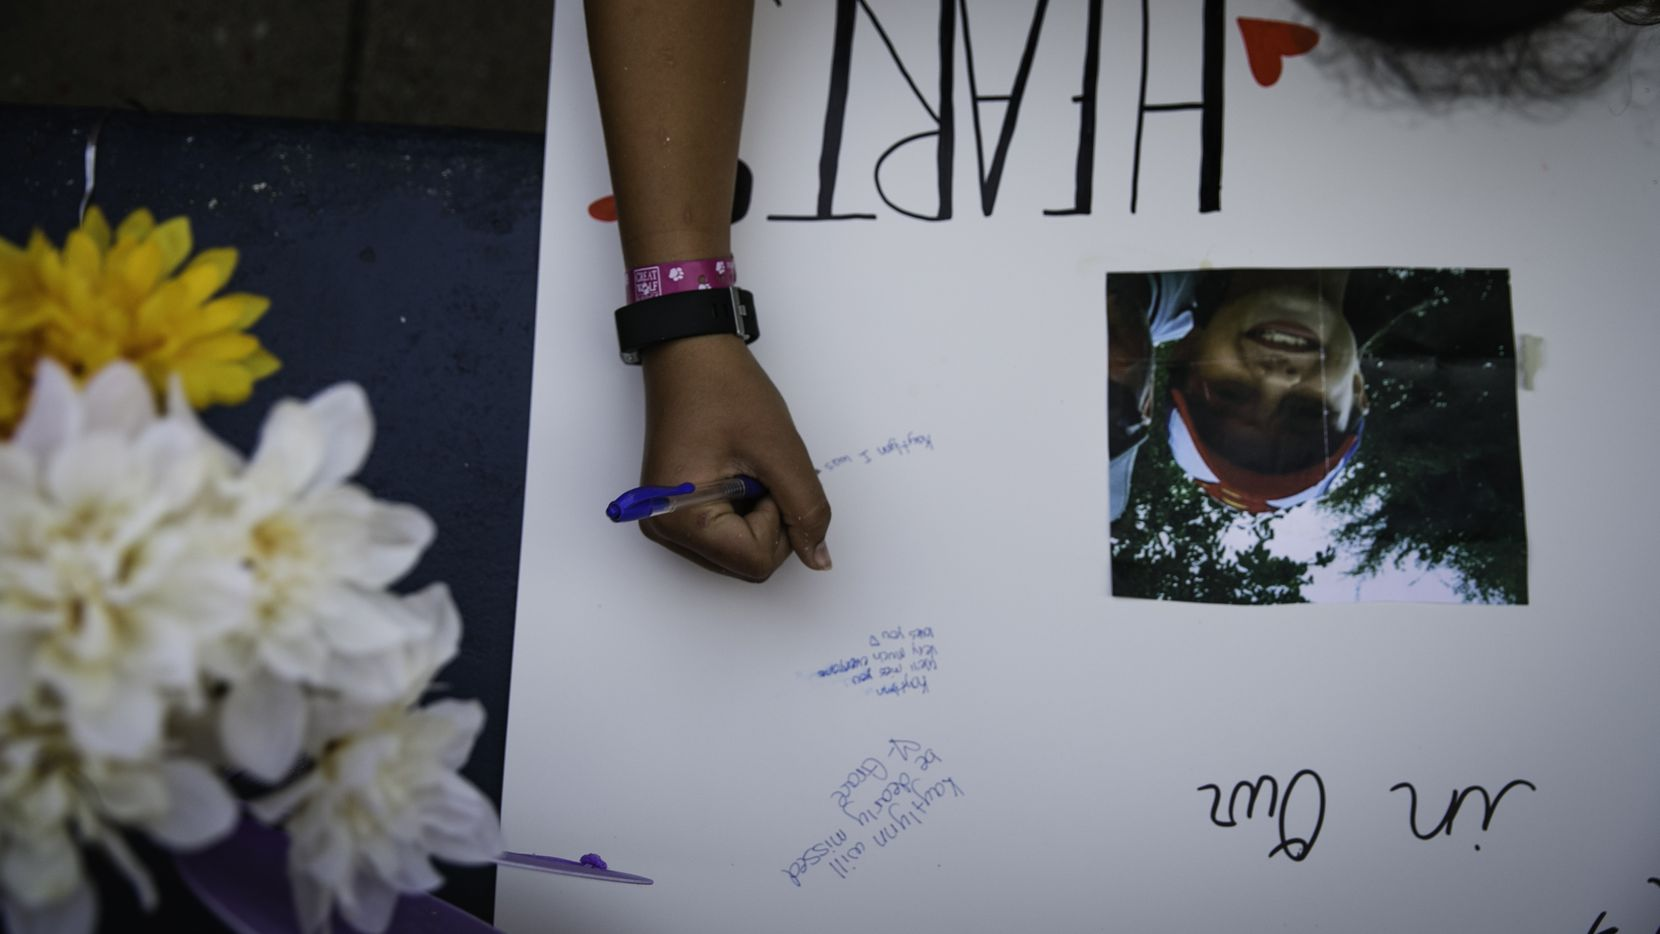 A vigil attendee signs a poster in honor of Kaytlynn Cargill at Central Junior High School in Euless.